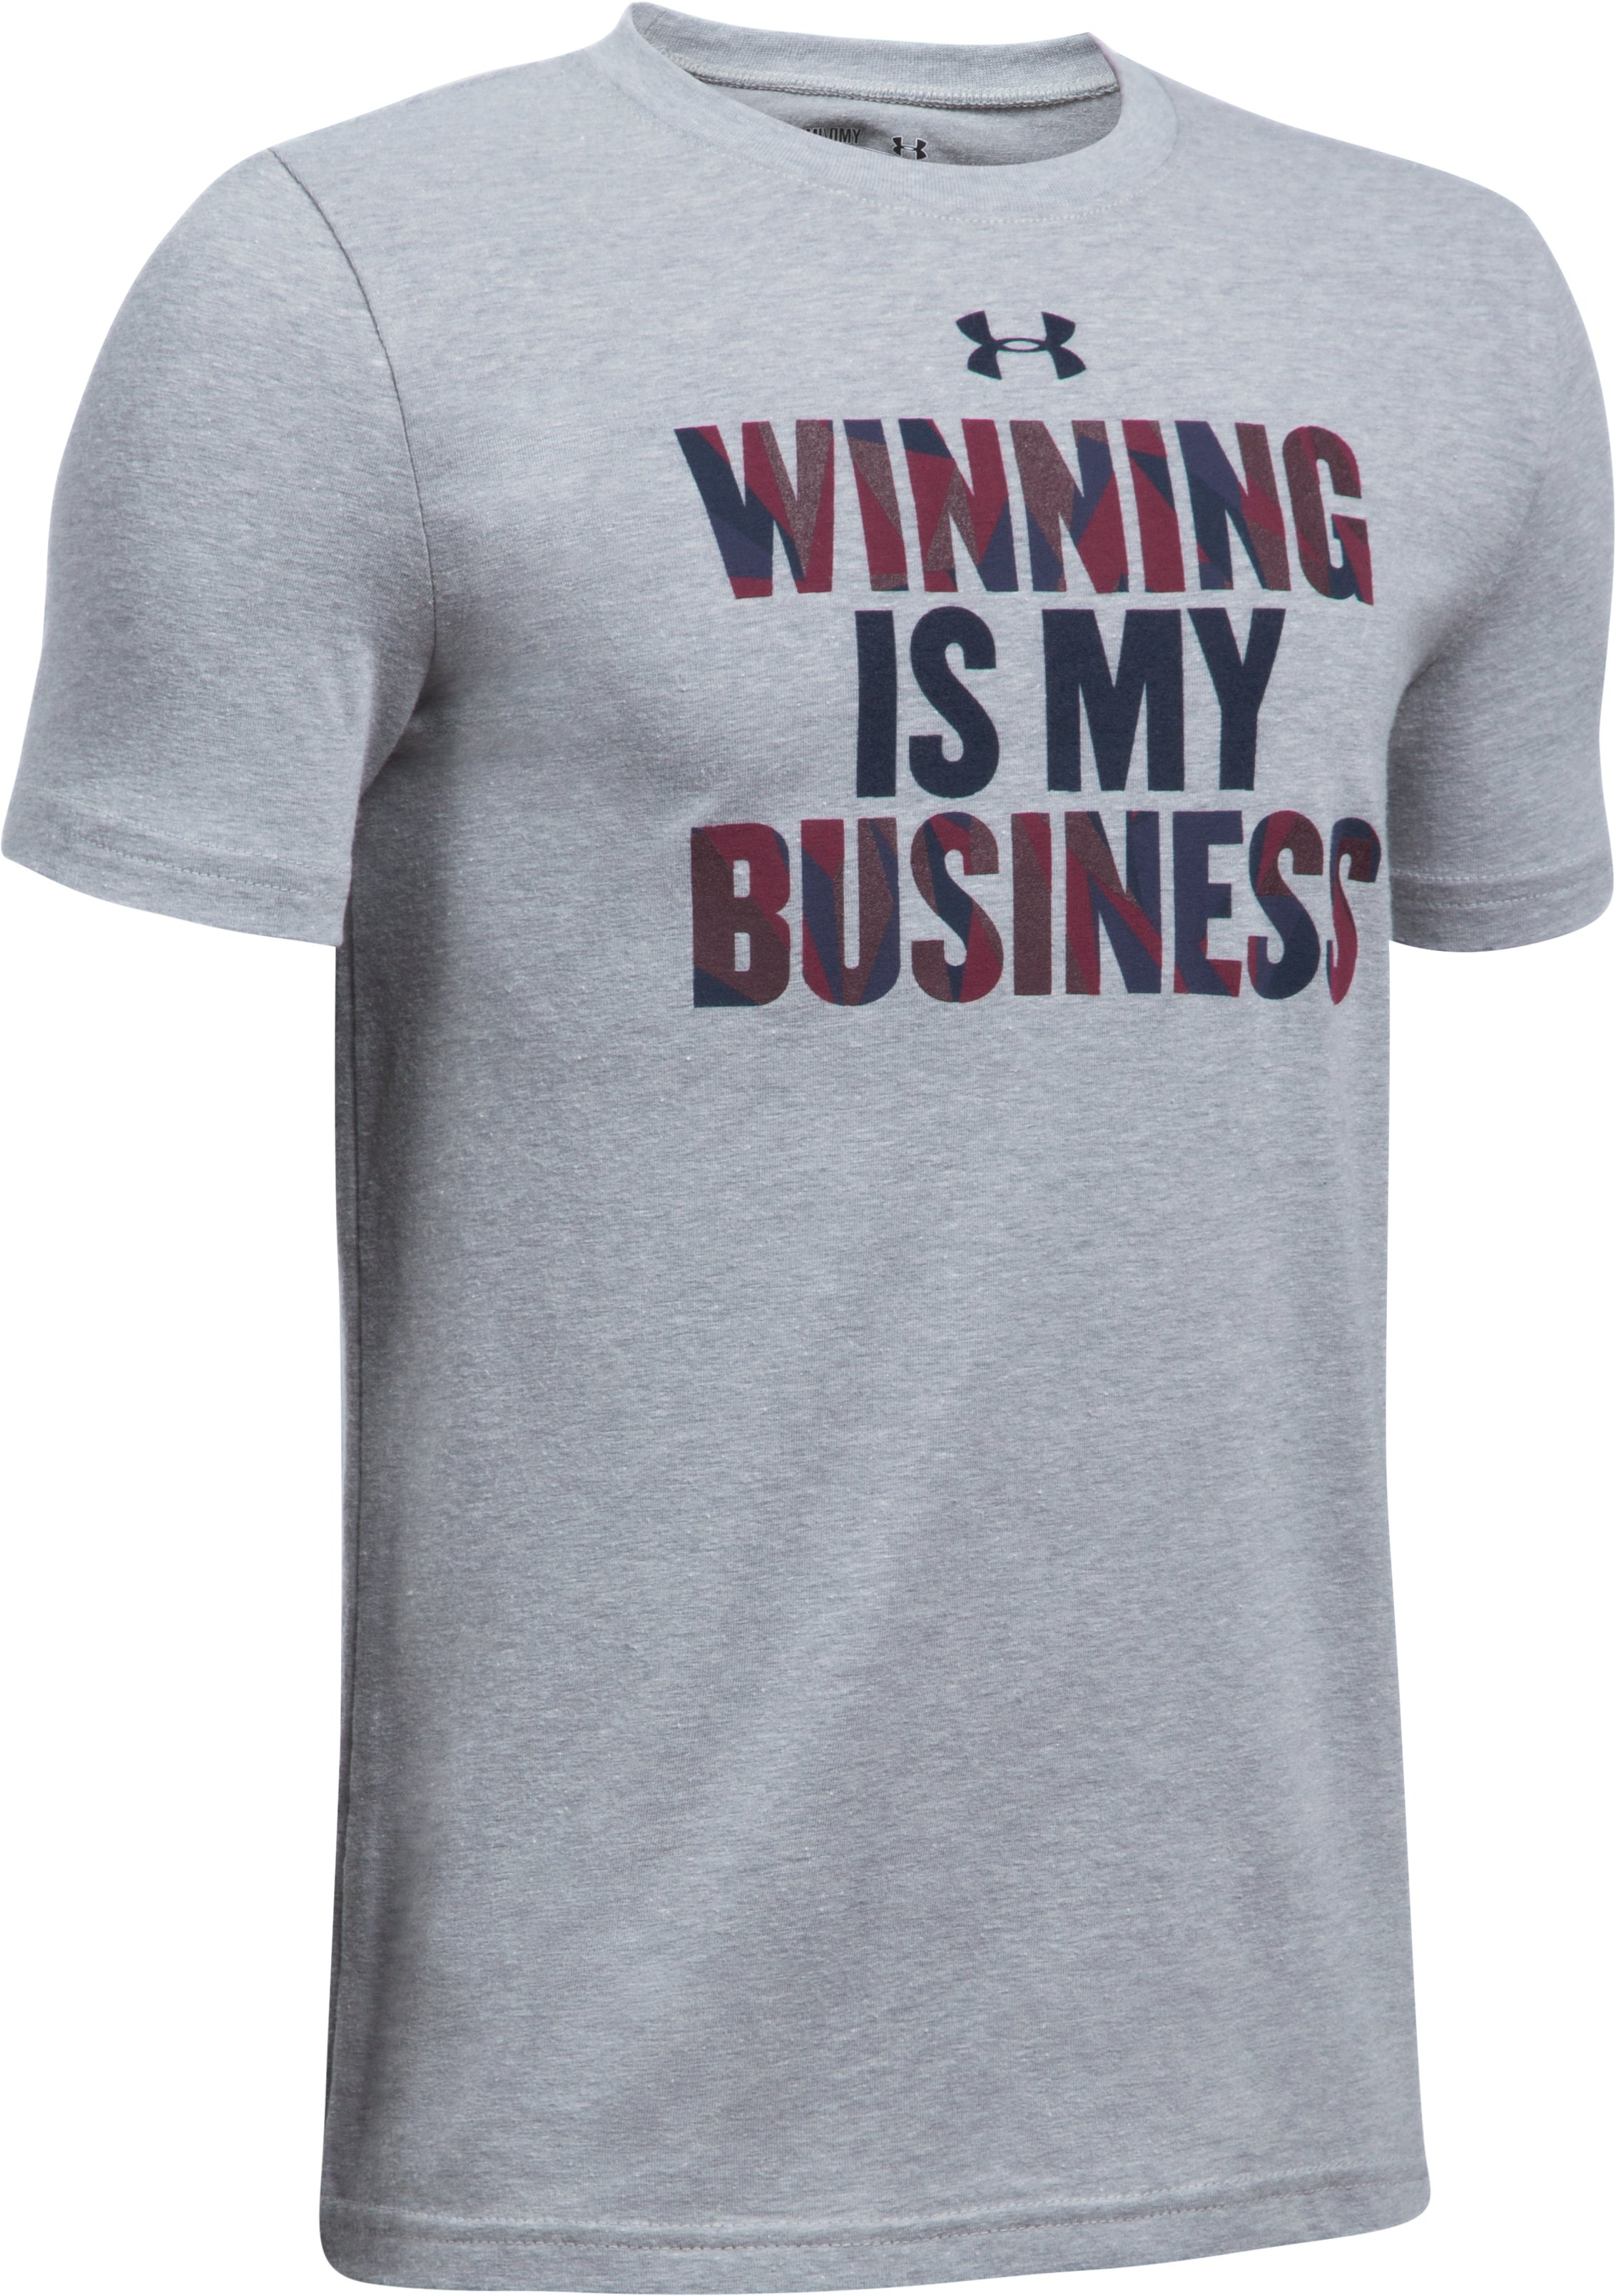 Boys' UA Winning Business T-Shirt, STEEL LIGHT HEATHER, undefined